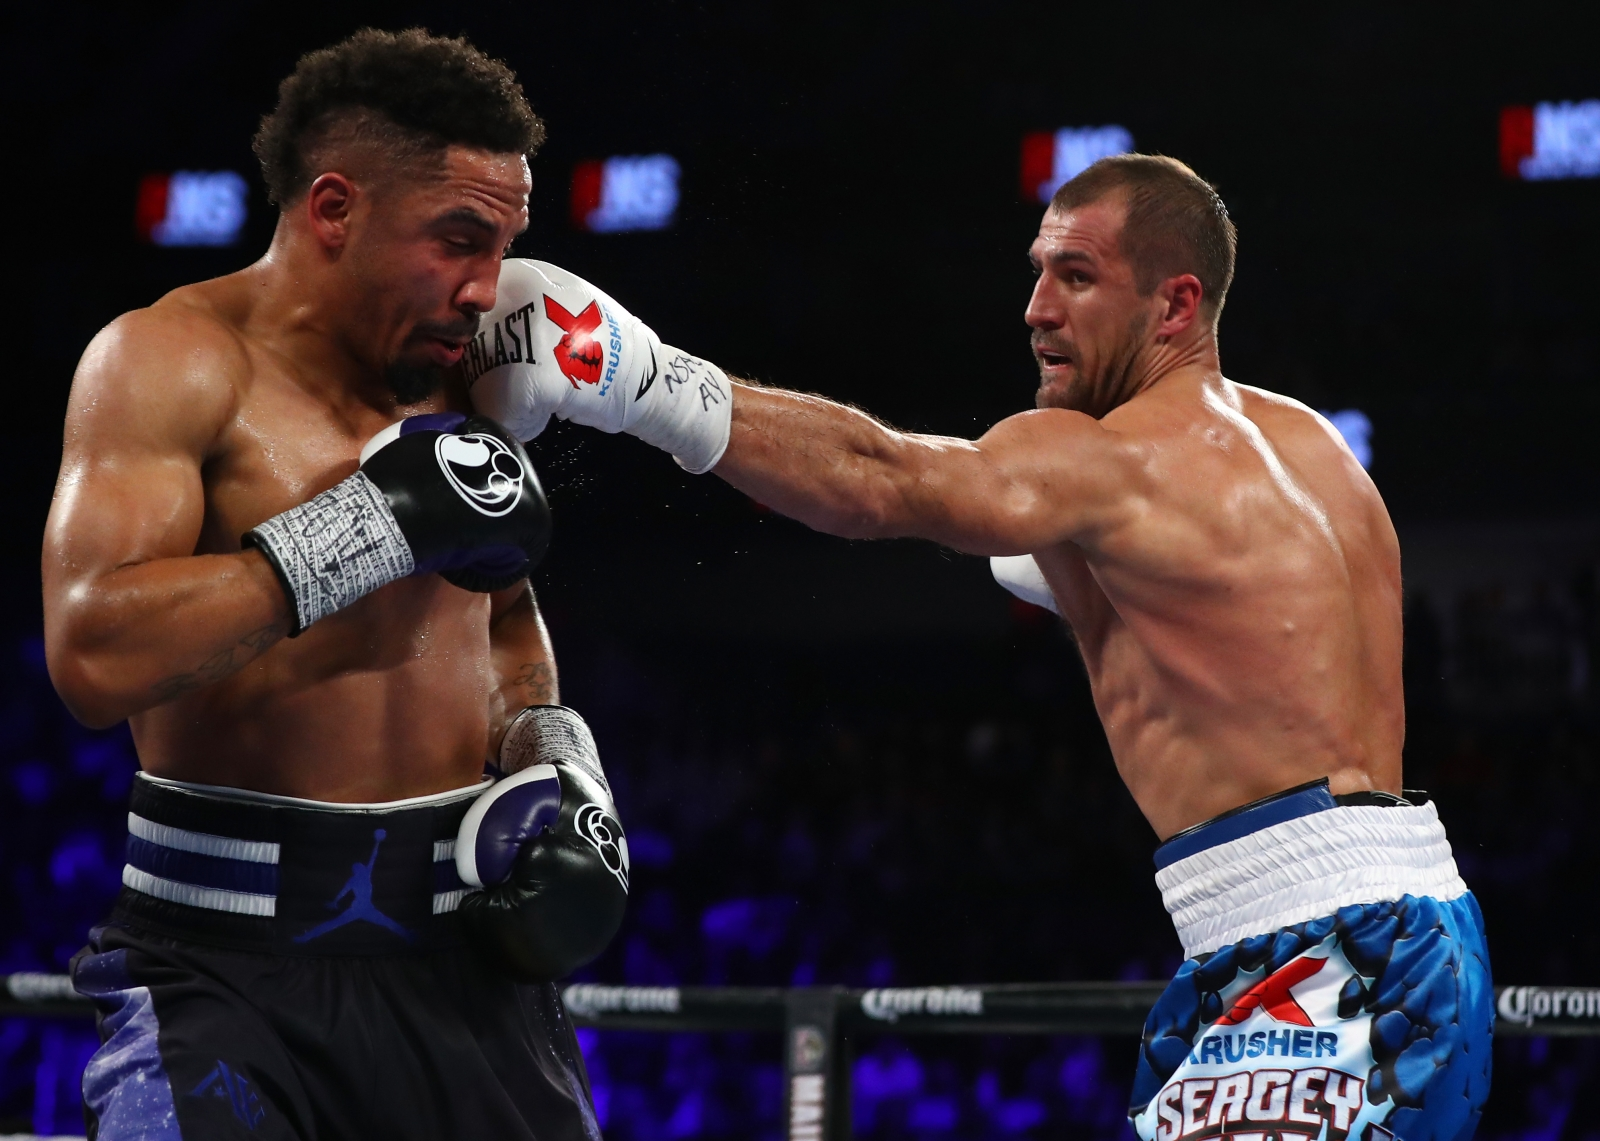 Sergey Kovalev - Andre Ward: One More Look